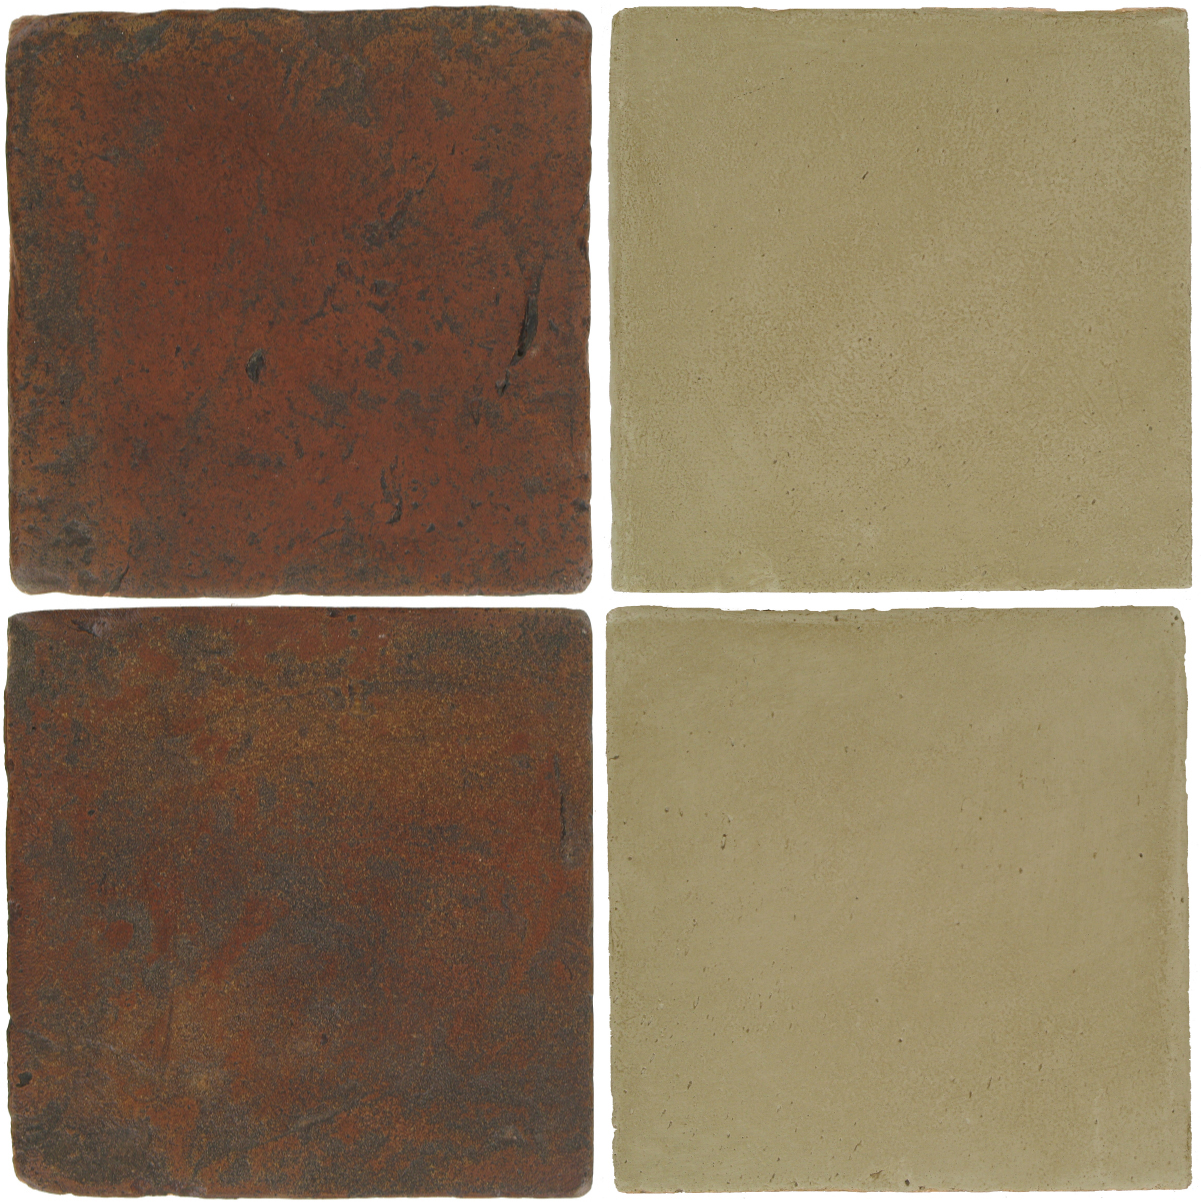 Pedralbes Antique Terracotta  2 Color Combinations  VTG-PSOW Old World + OHS-PGDW Dirty W.